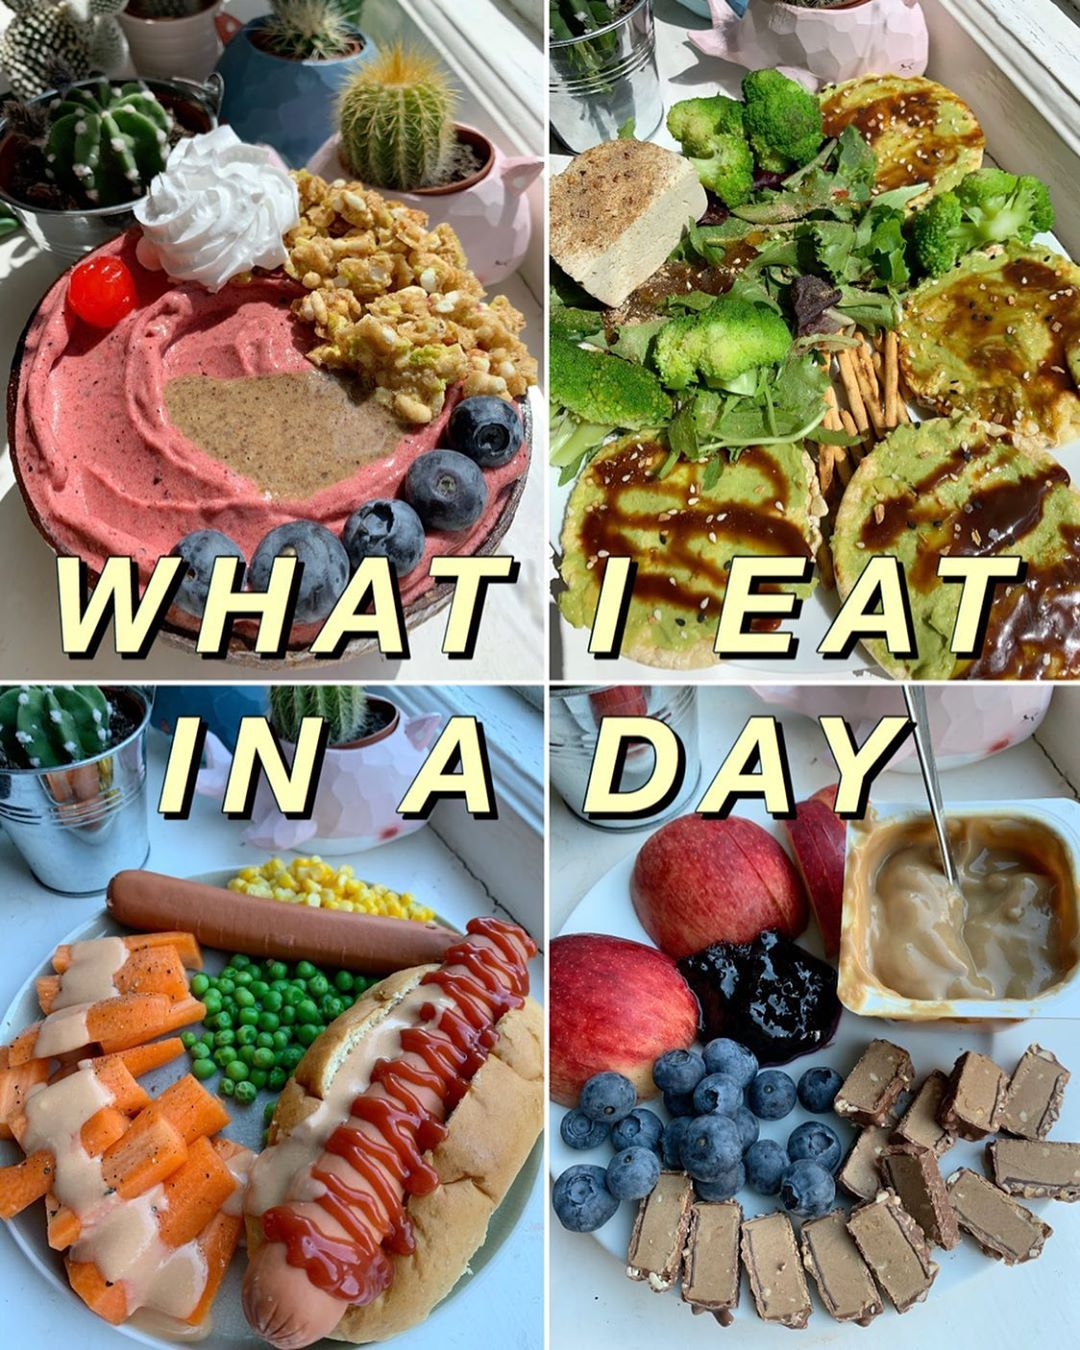 vegan what i eat in a day  when things go wrong display image  b34123ce